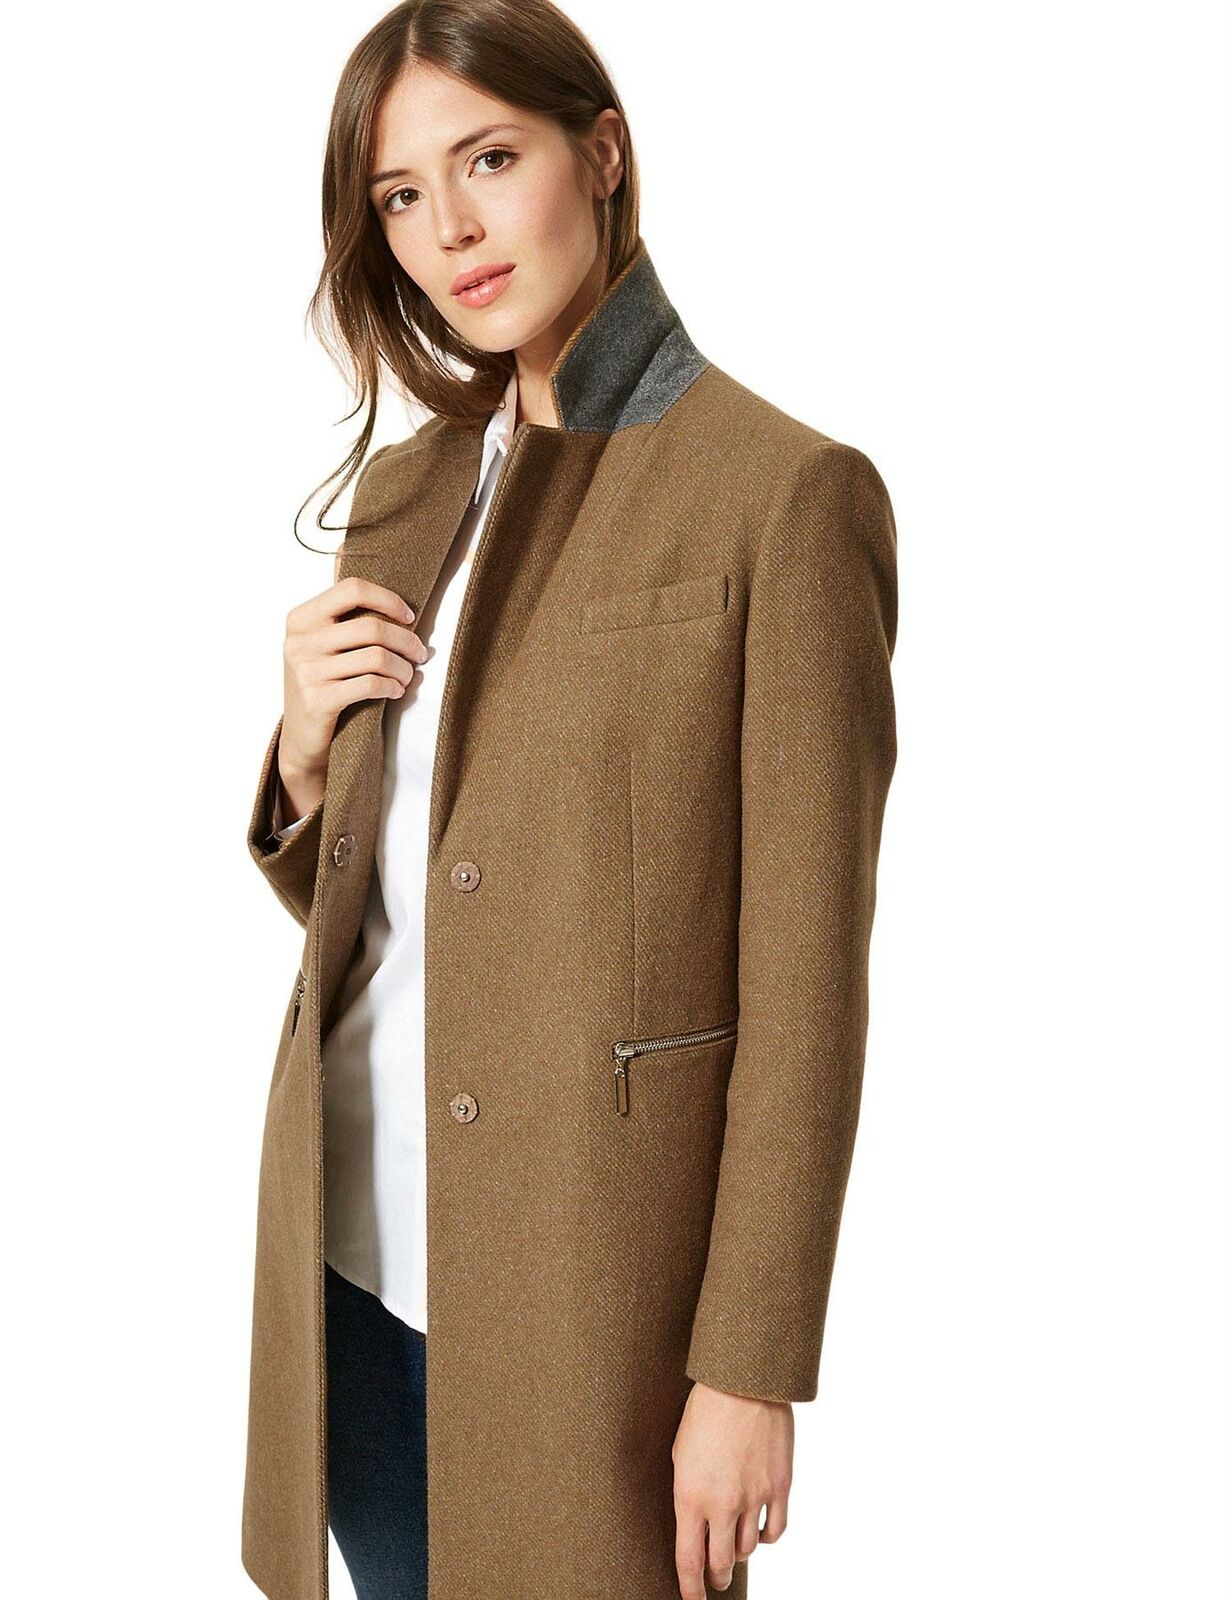 M-amp-S-Wool-Blend-Single-Breasted-Pink-Brown-Winter-Coat-Holly-Willoughby-Size-6-24 thumbnail 15